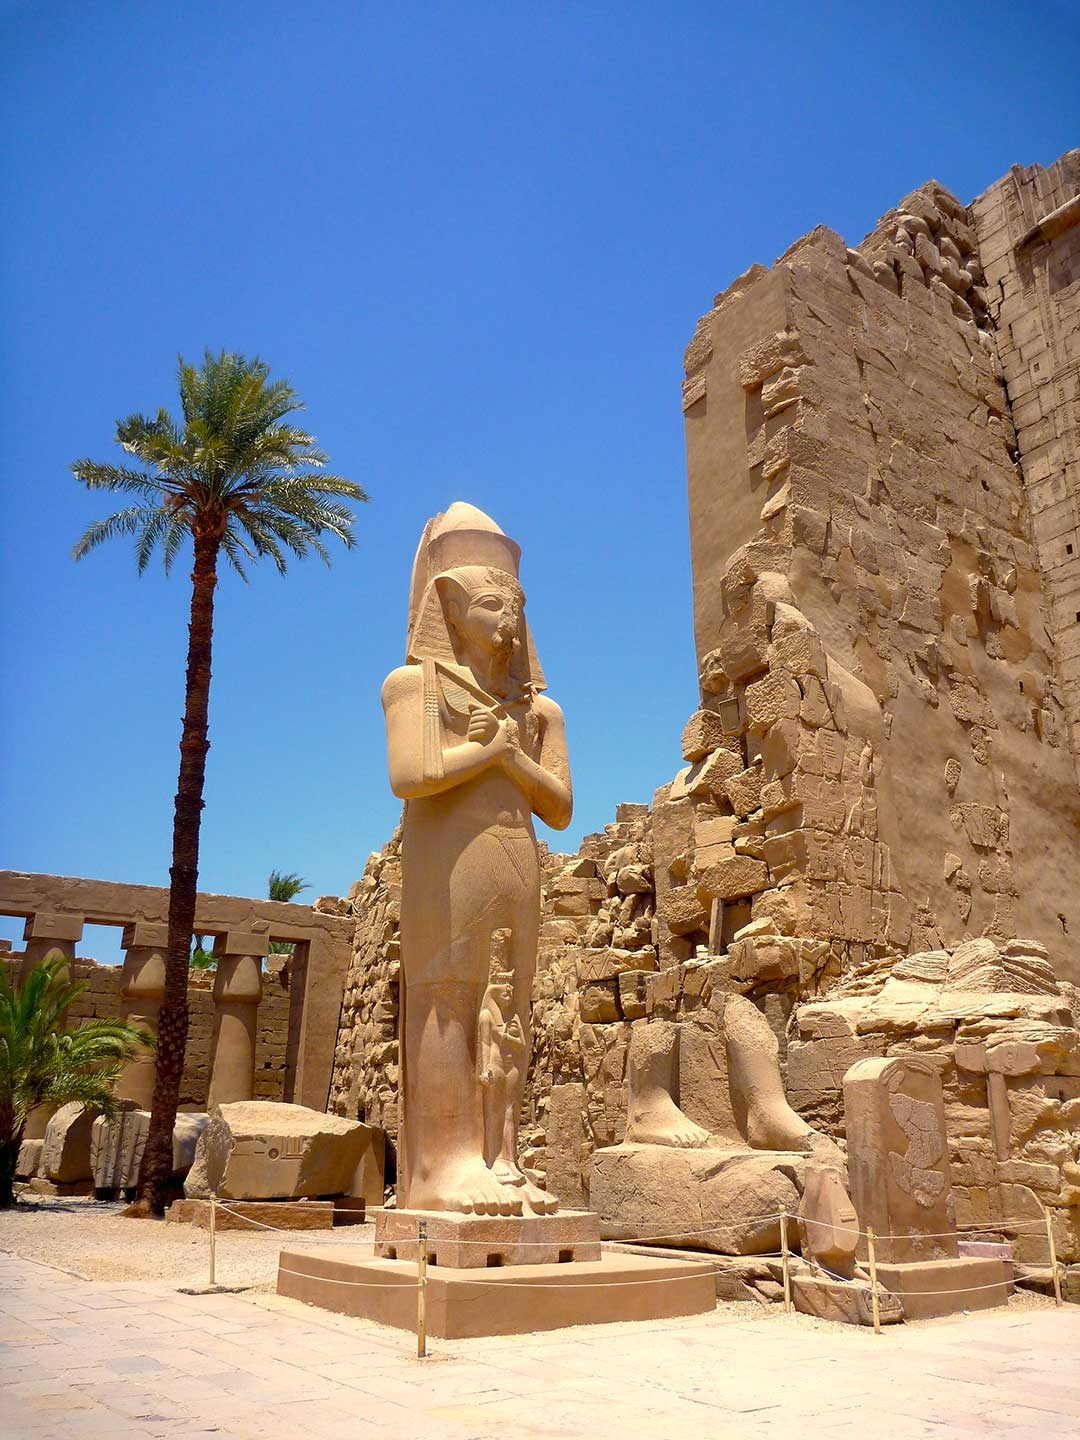 One of Hatshepsut's monuments on a really hot summer day in Egypt